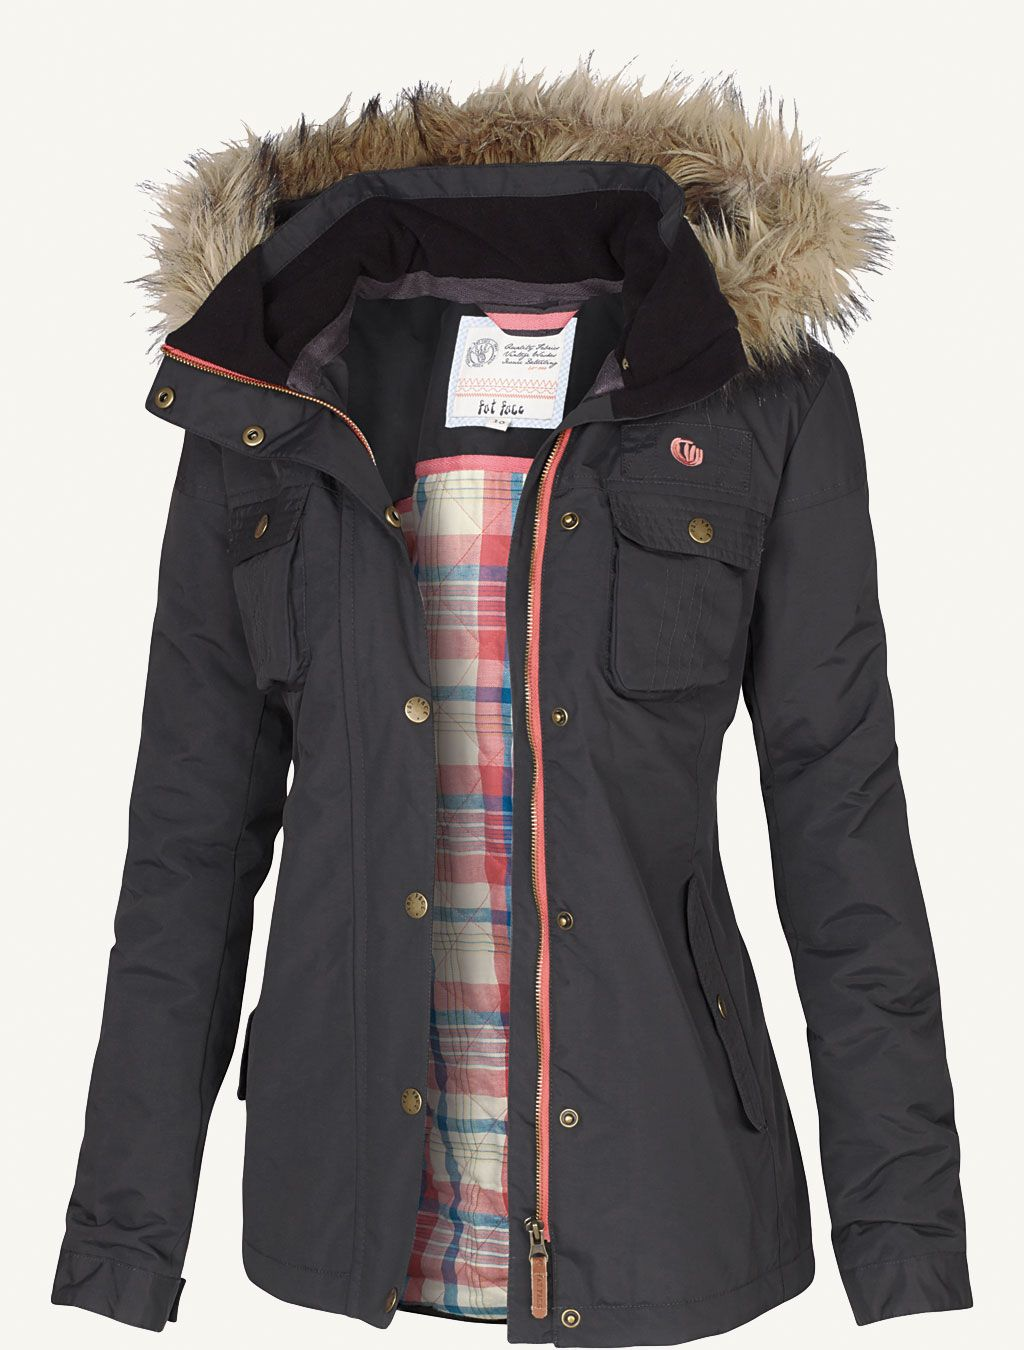 winter coat | Clothes and Jewlery | Pinterest | Winter jackets